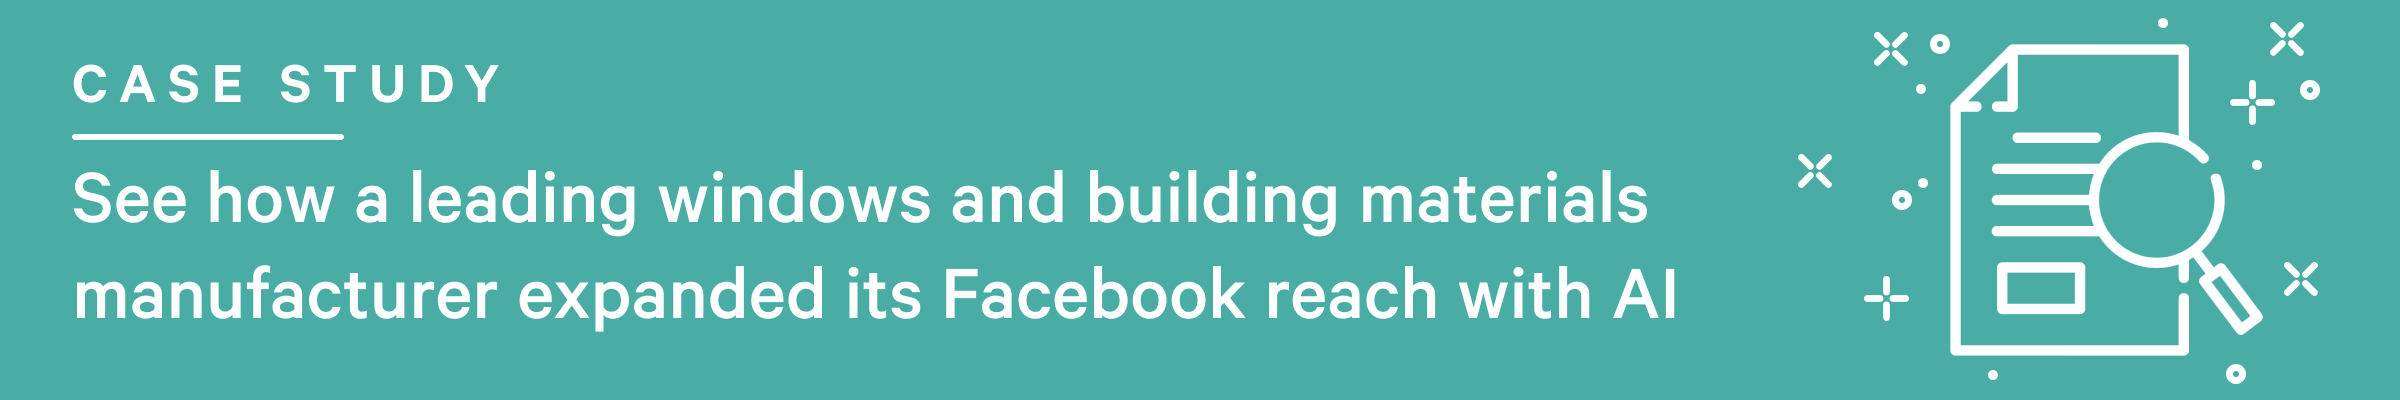 See how a leading windows and building materials manufacturer expanded its Facebook reach with AI